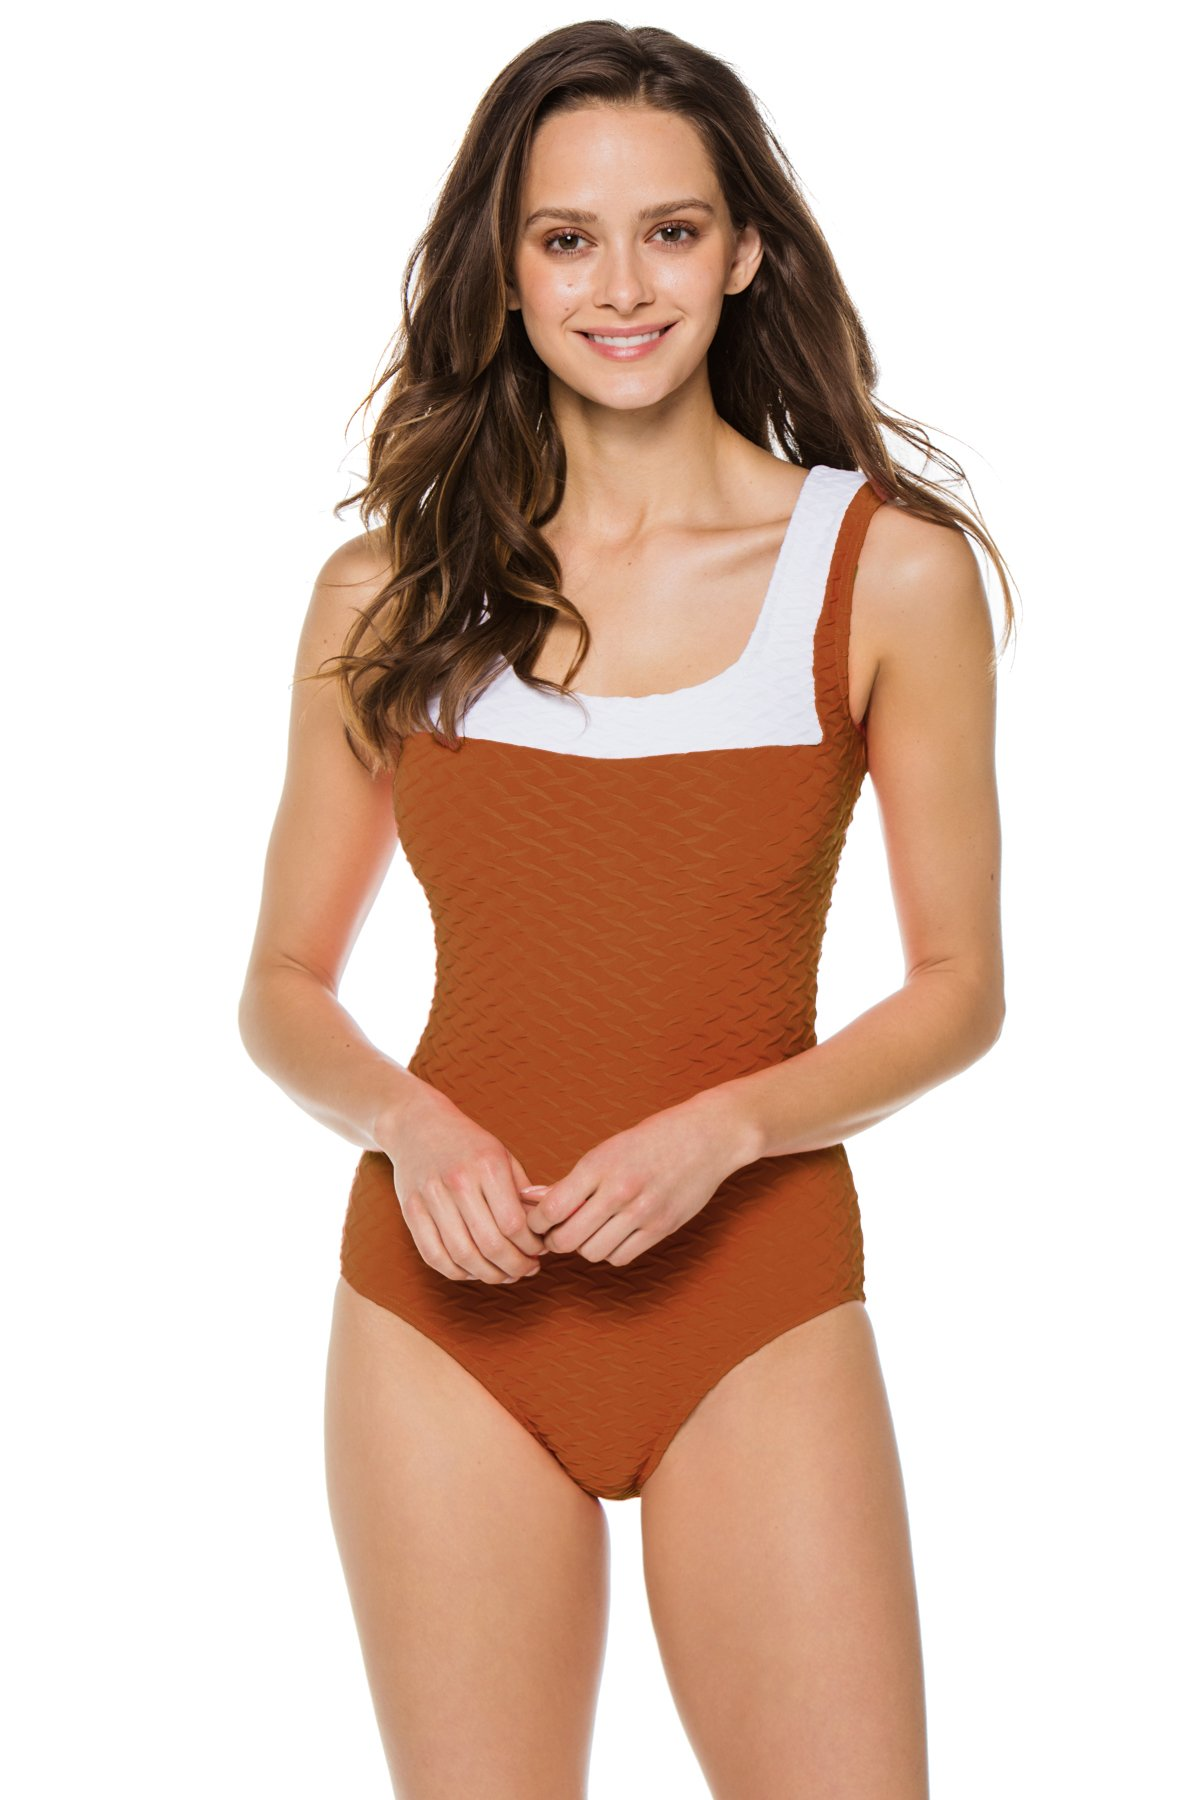 Textured Over The Shoulder One Piece Swimsuit - Amber 1